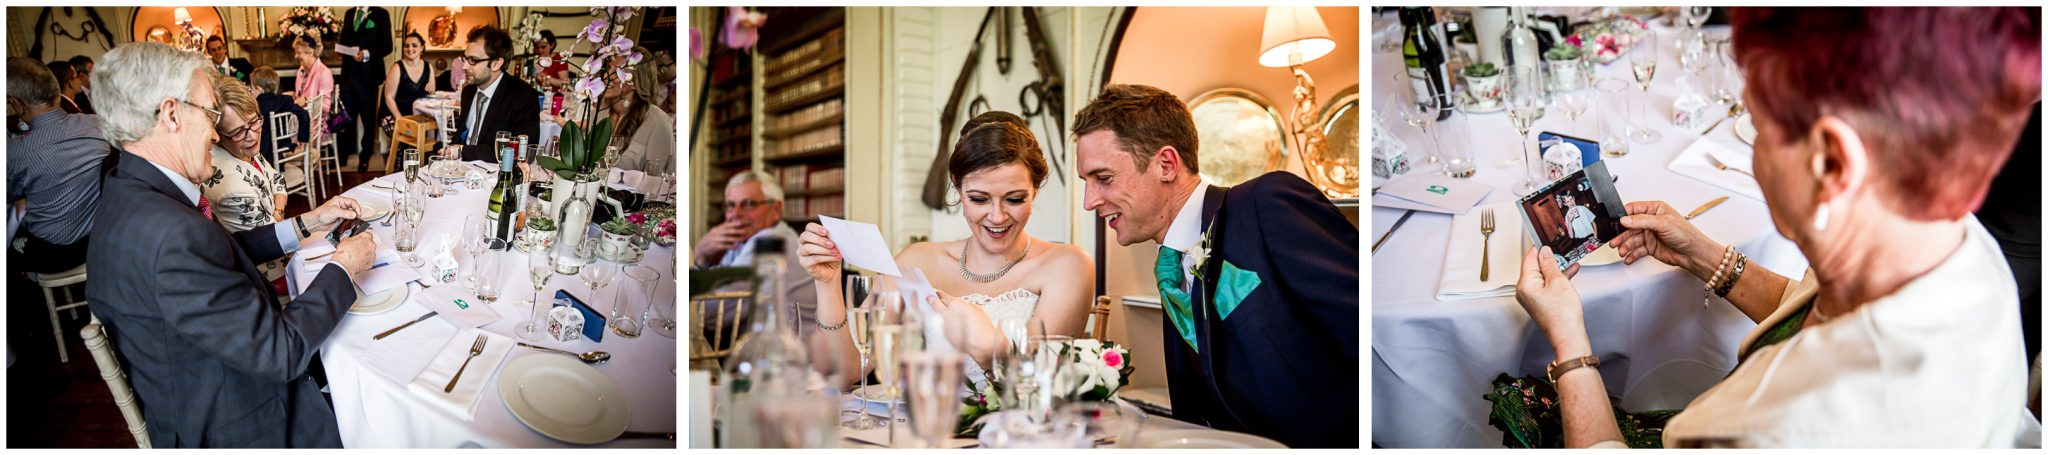 Avington Park wedding photography candids of guests